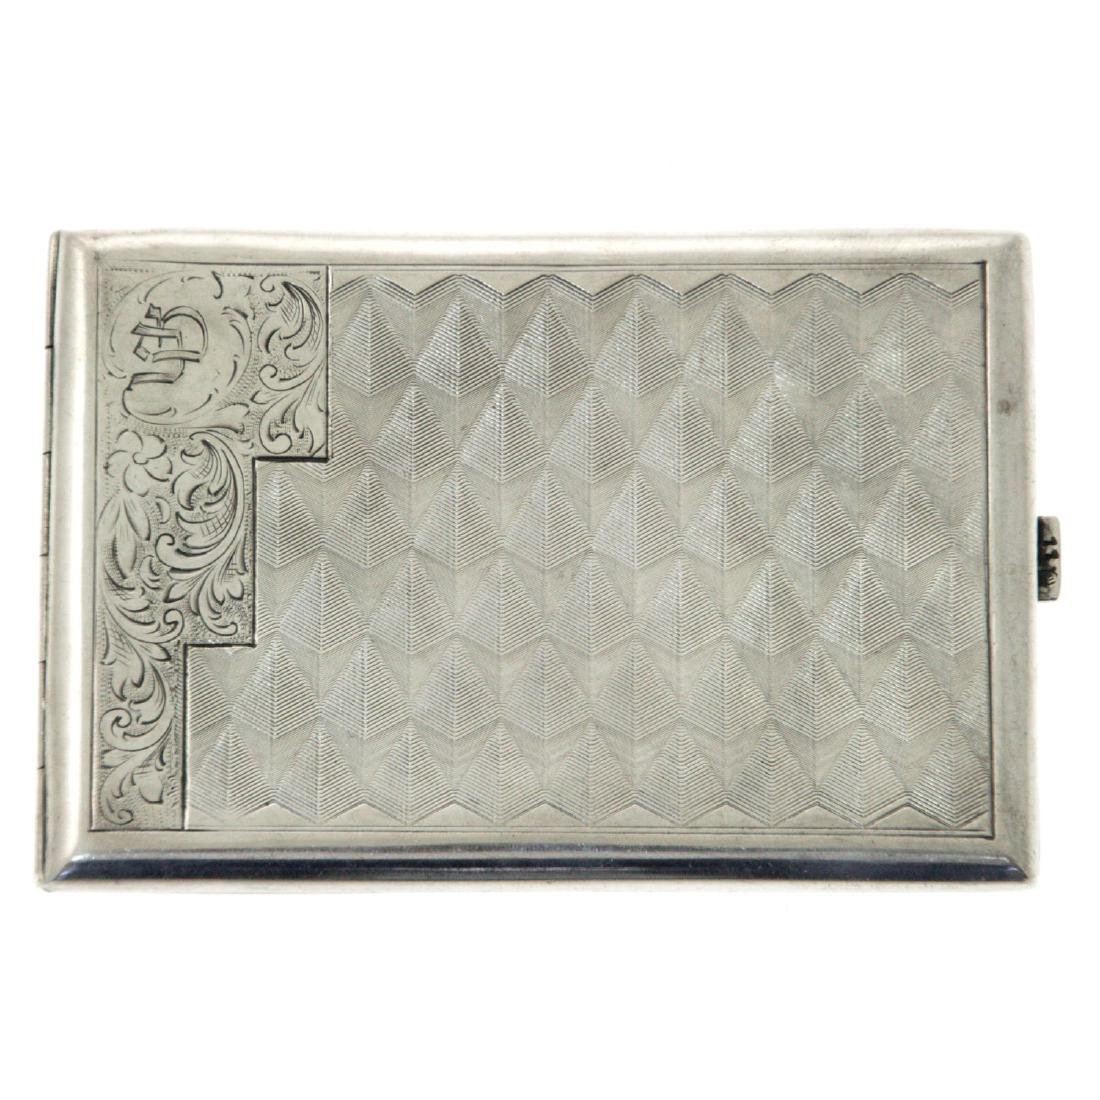 Silver Cigarette Case.